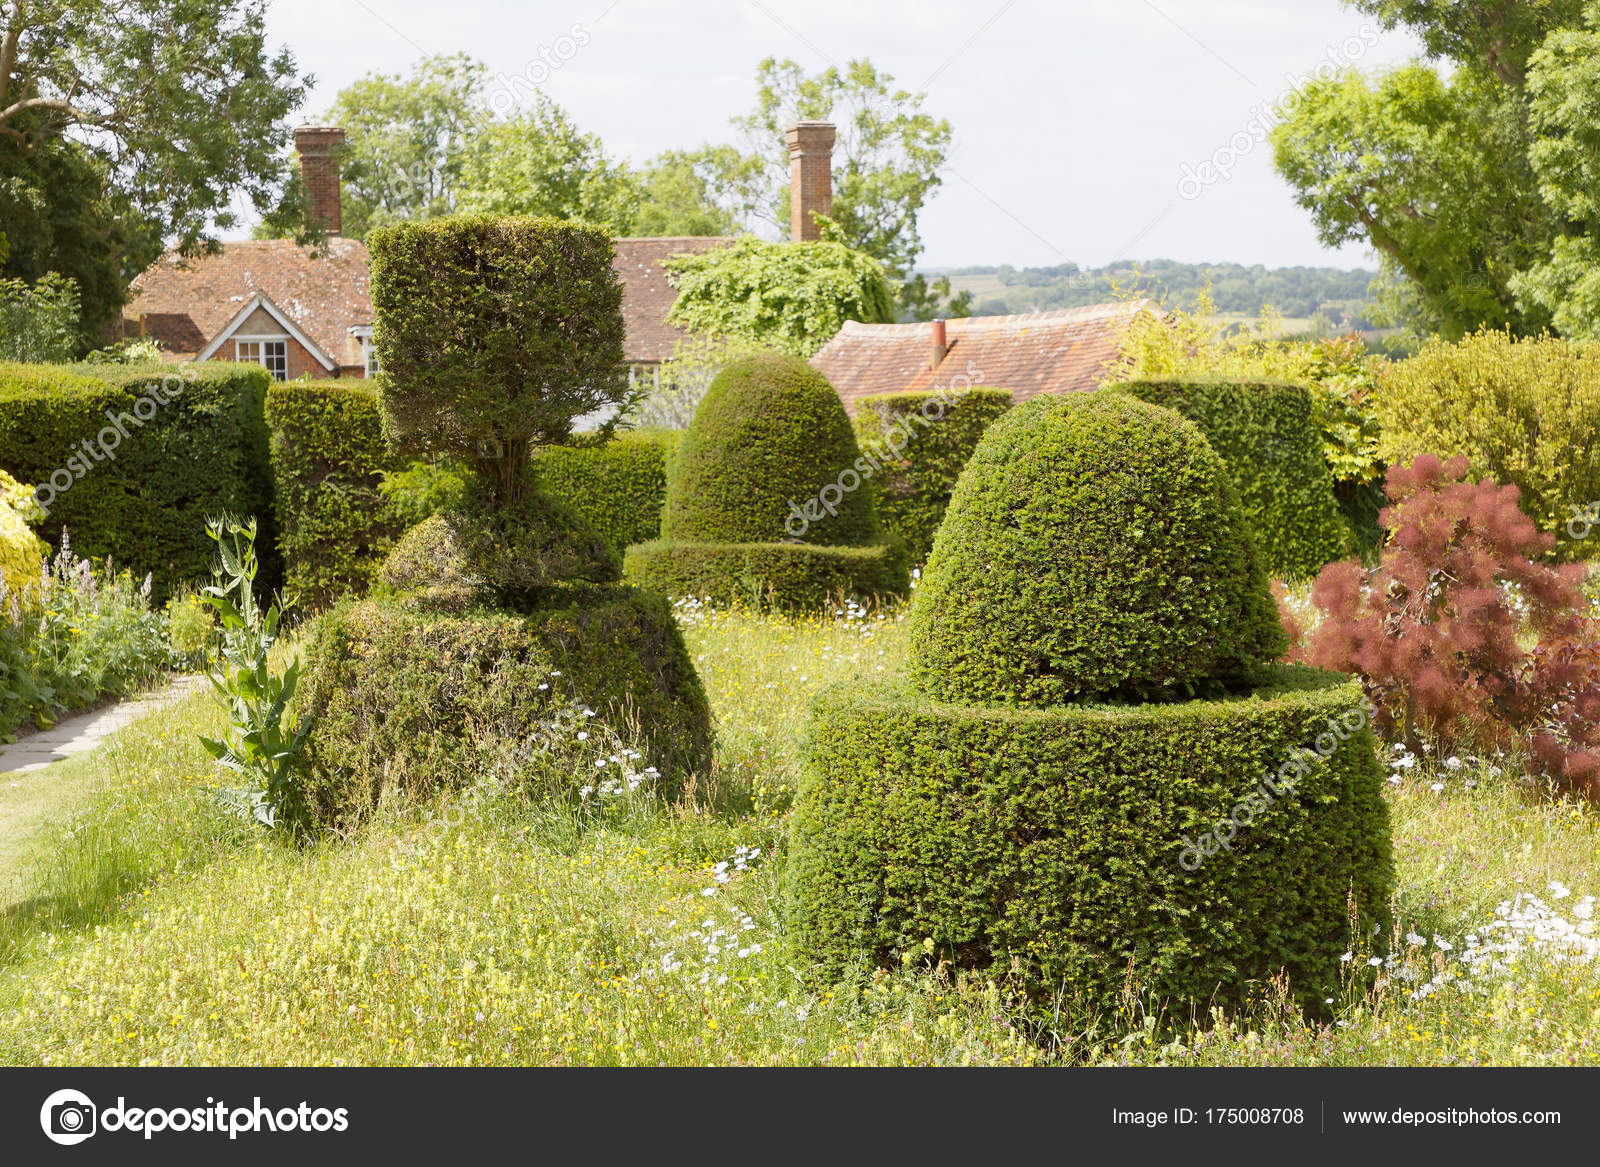 Topiary Of Yew Trees In Different Shape In A Garden Stock Photo C Hans Chr 175008708